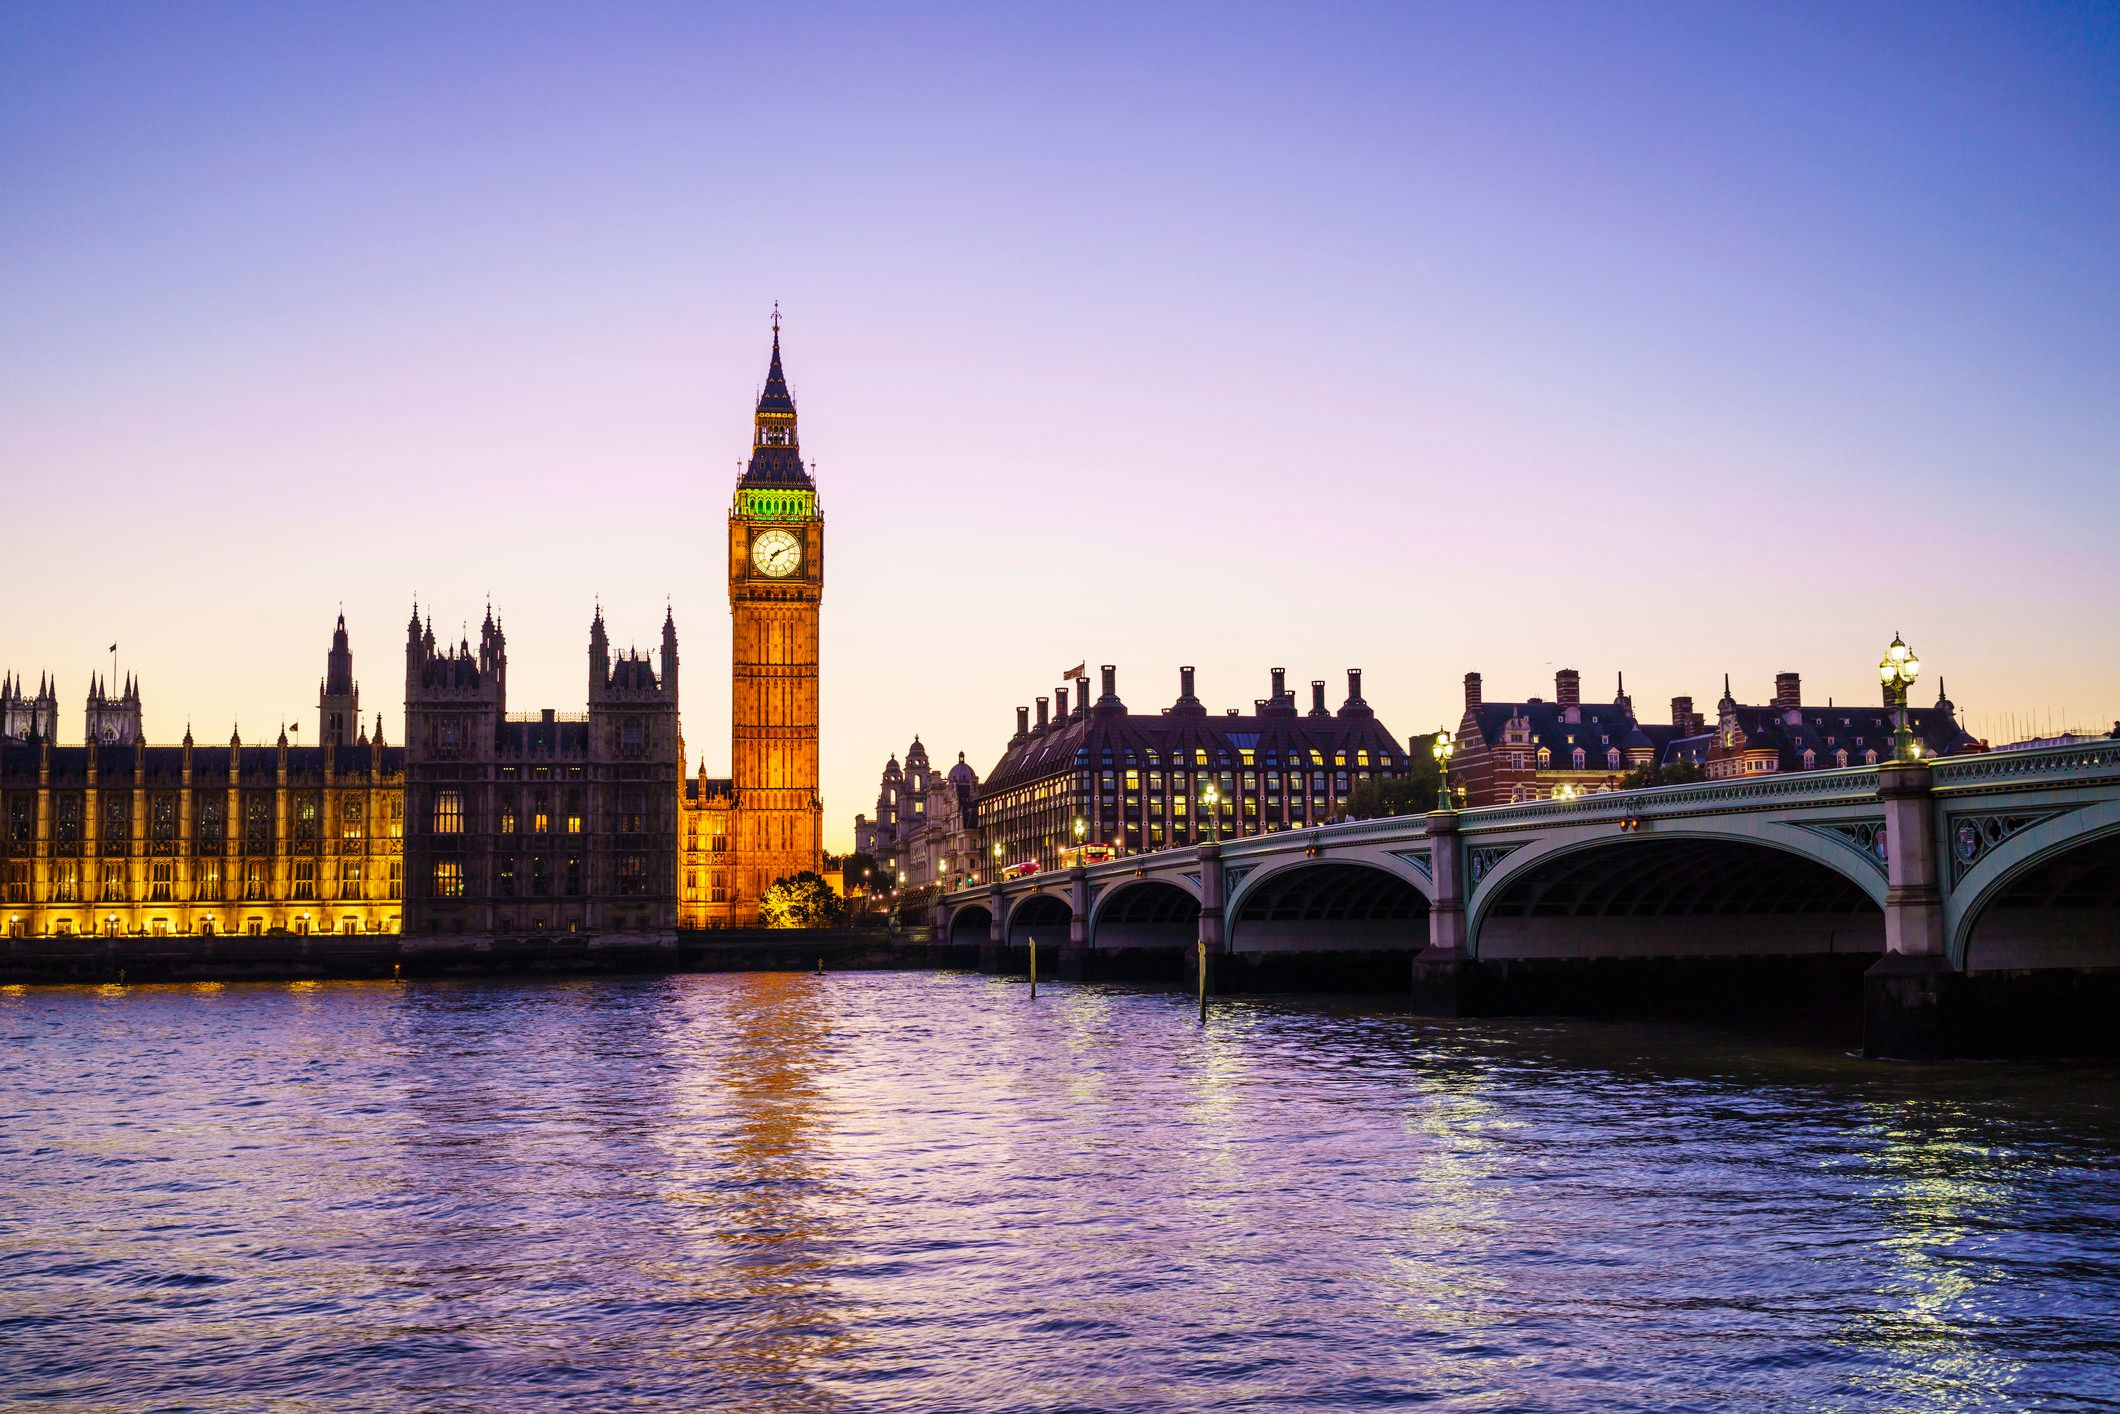 The Houses of Parliament and Big Ben viewed from across the River Thames at dusk.